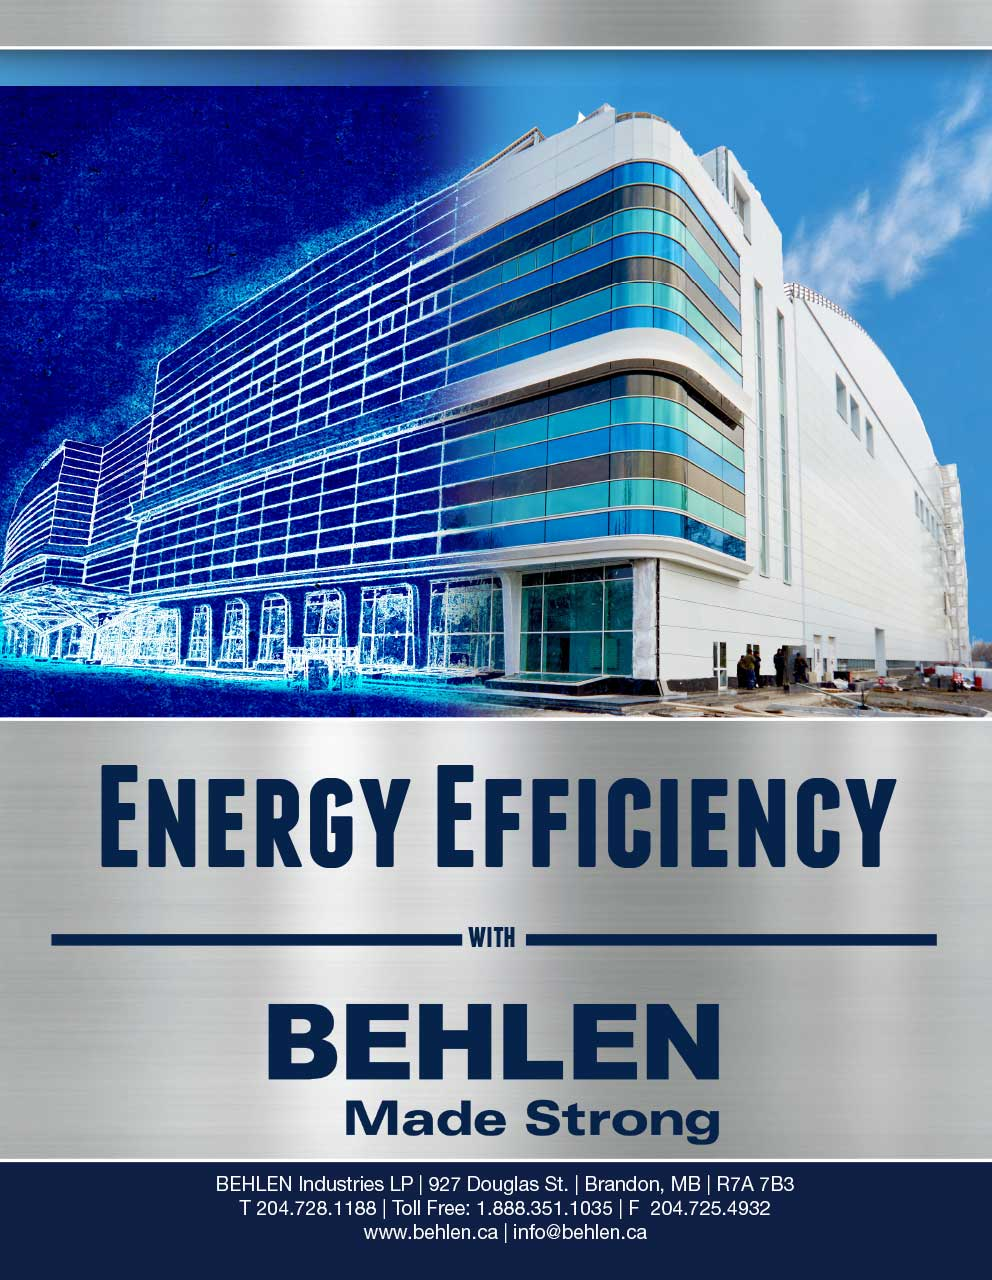 Behlen Industries - Energy Efficiency with BEHLEN